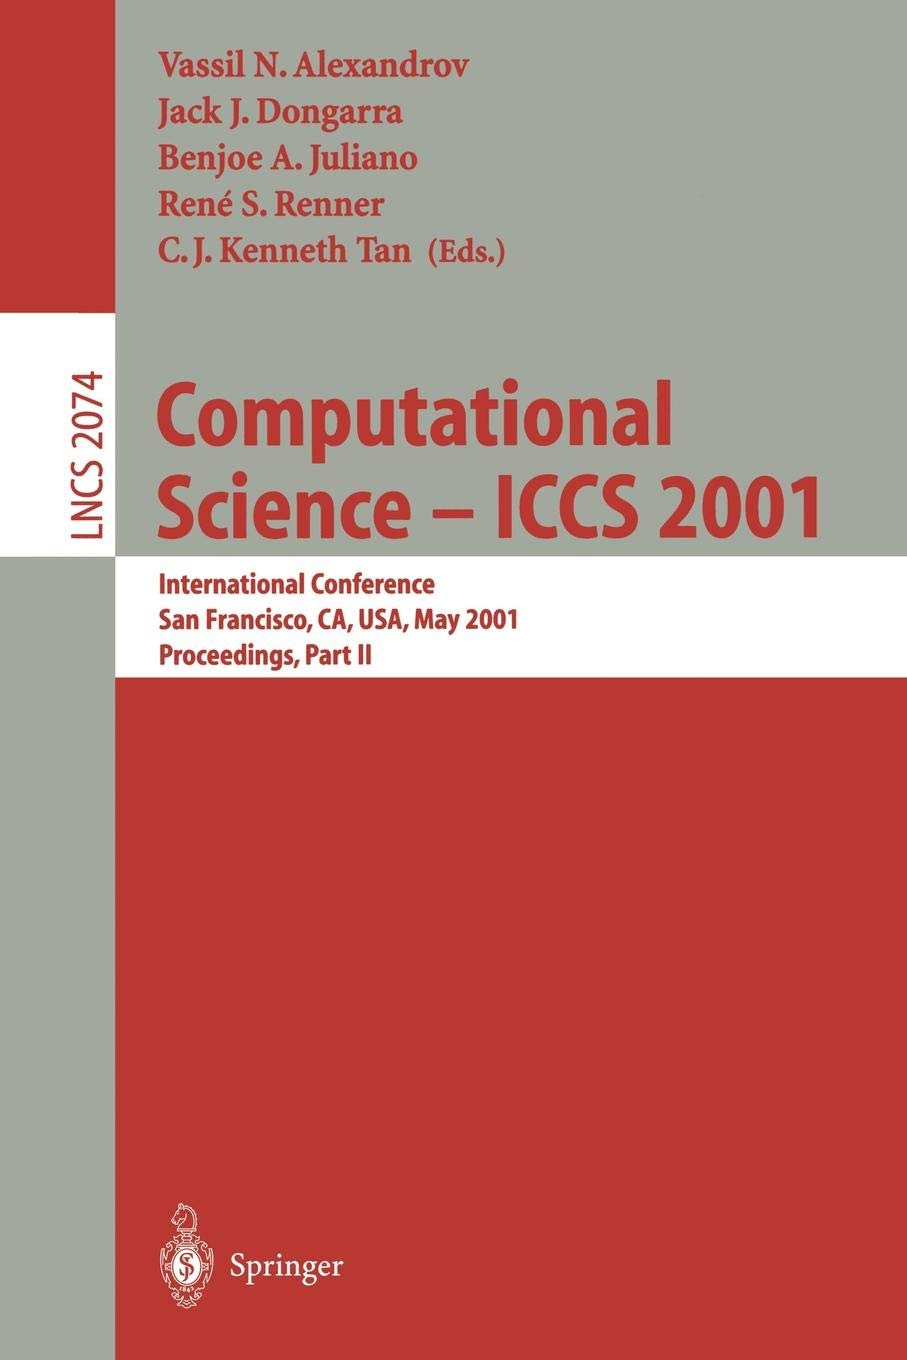 Download Computational Science - ICCS 2001: International Conference, San Francisco, CA, USA, May 28-30, 2001. Proceedings, Part II (Lecture Notes in Computer Science) (Pt.2) ebook